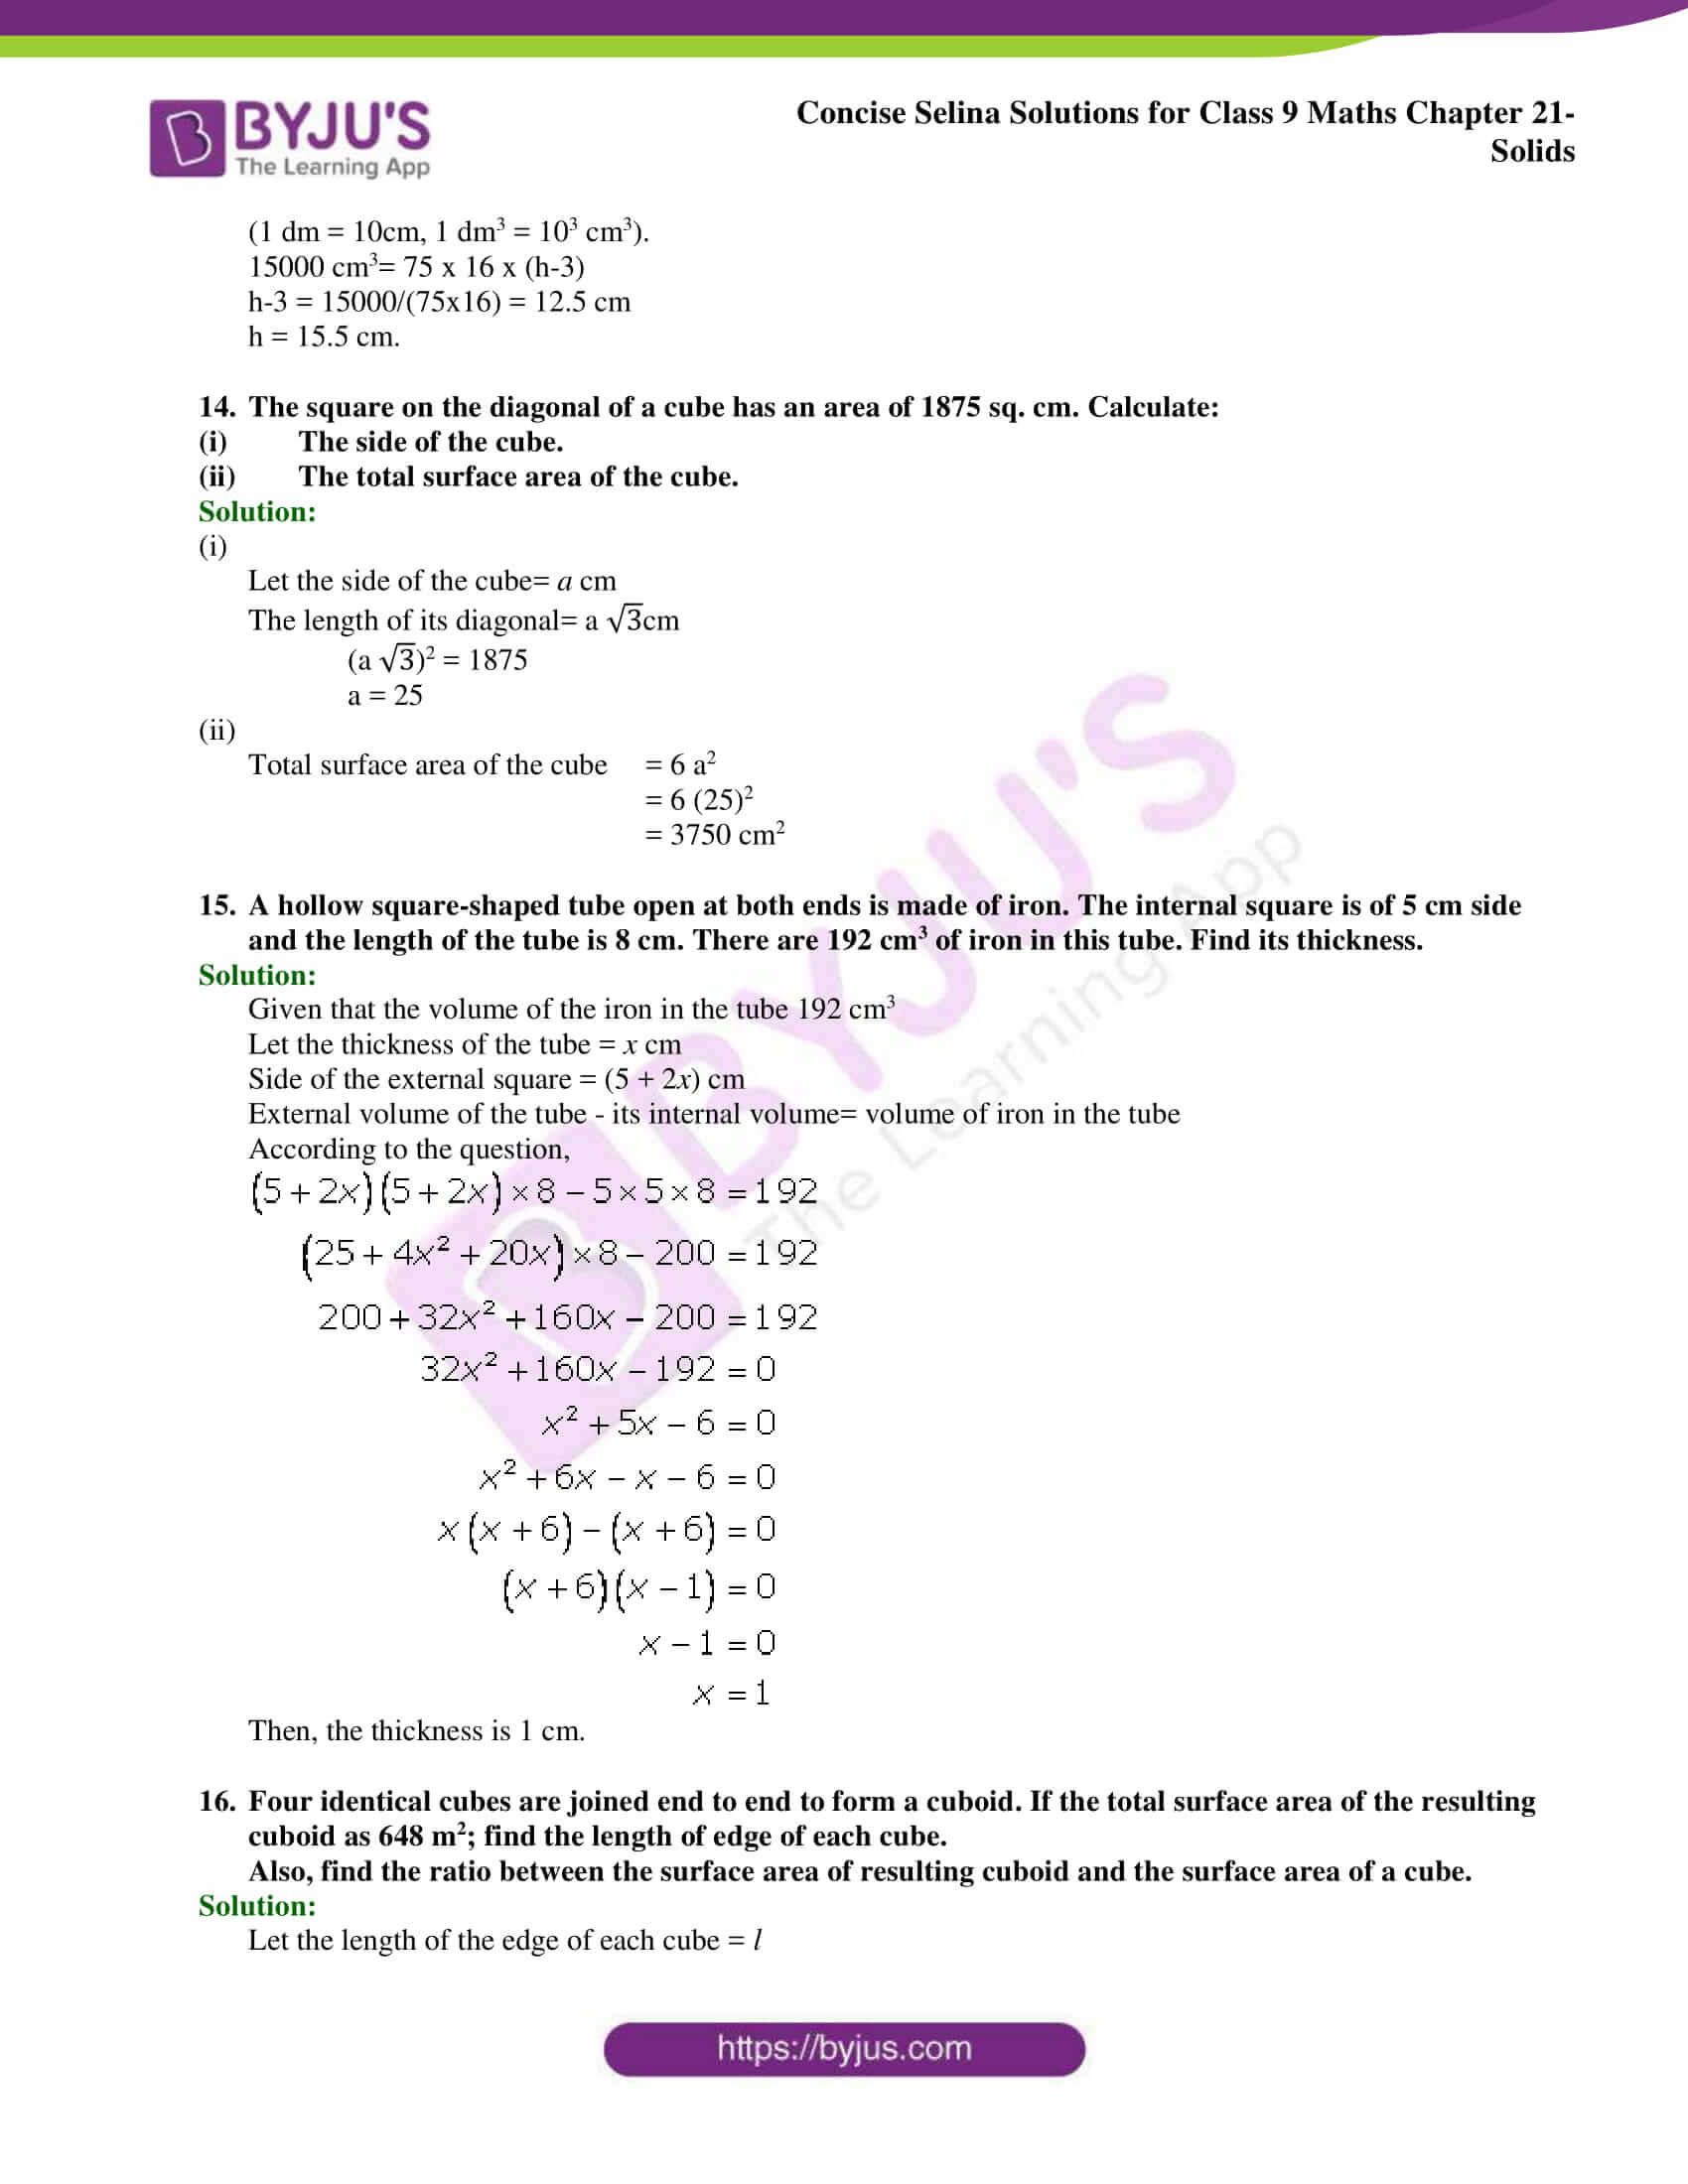 Concise Selina Solutions Class 9 Maths Chapter 21 Solids part 05